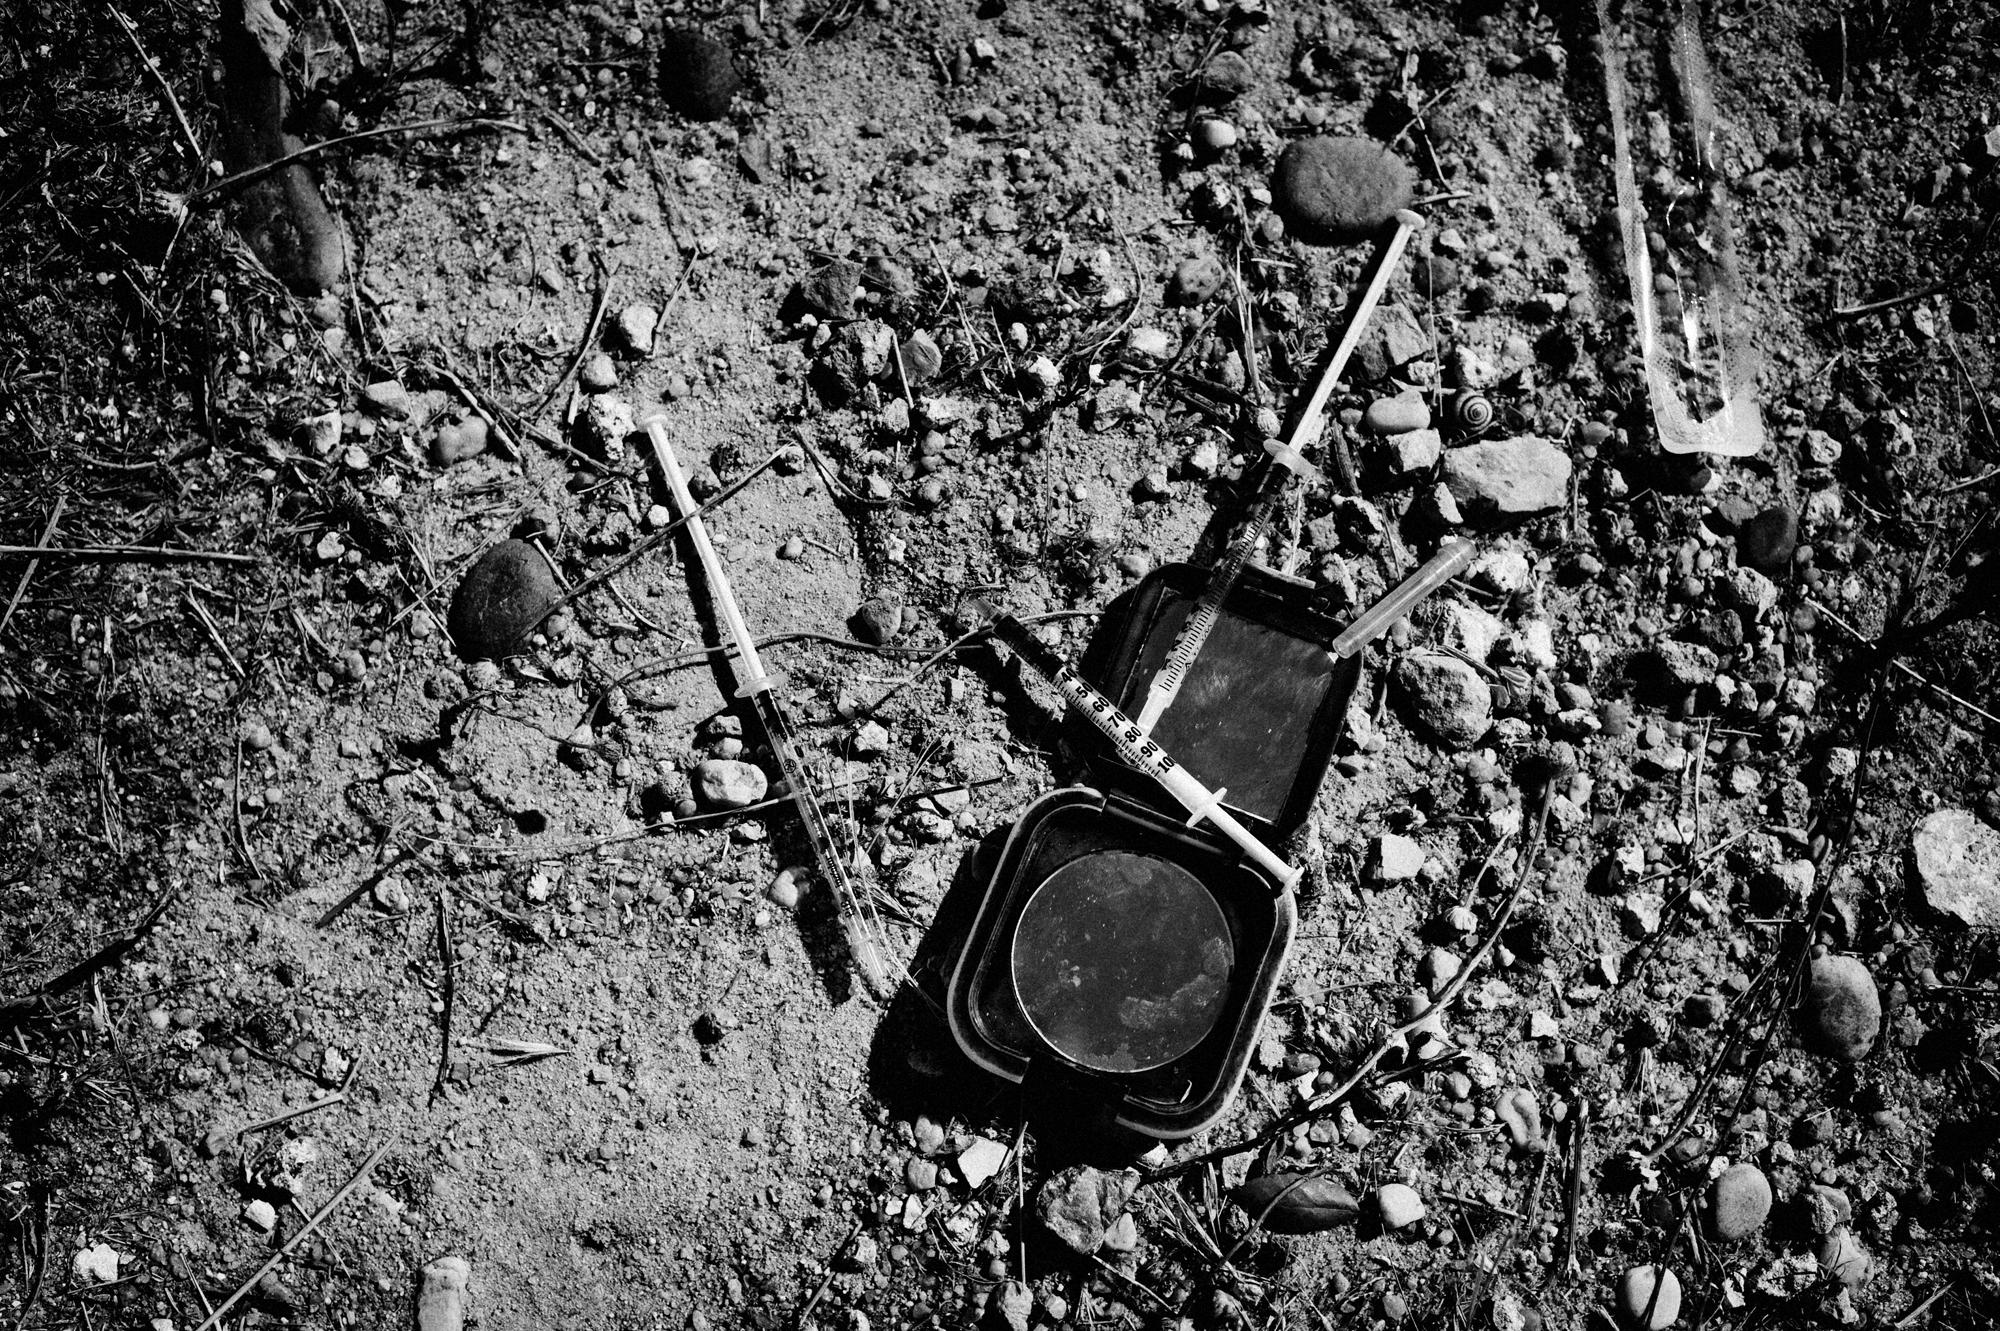 Casal Ventoso, Lisbon, Portugal. July 2011. Syringes and needles from Jaime after shooting heroin at Casal Ventoso.